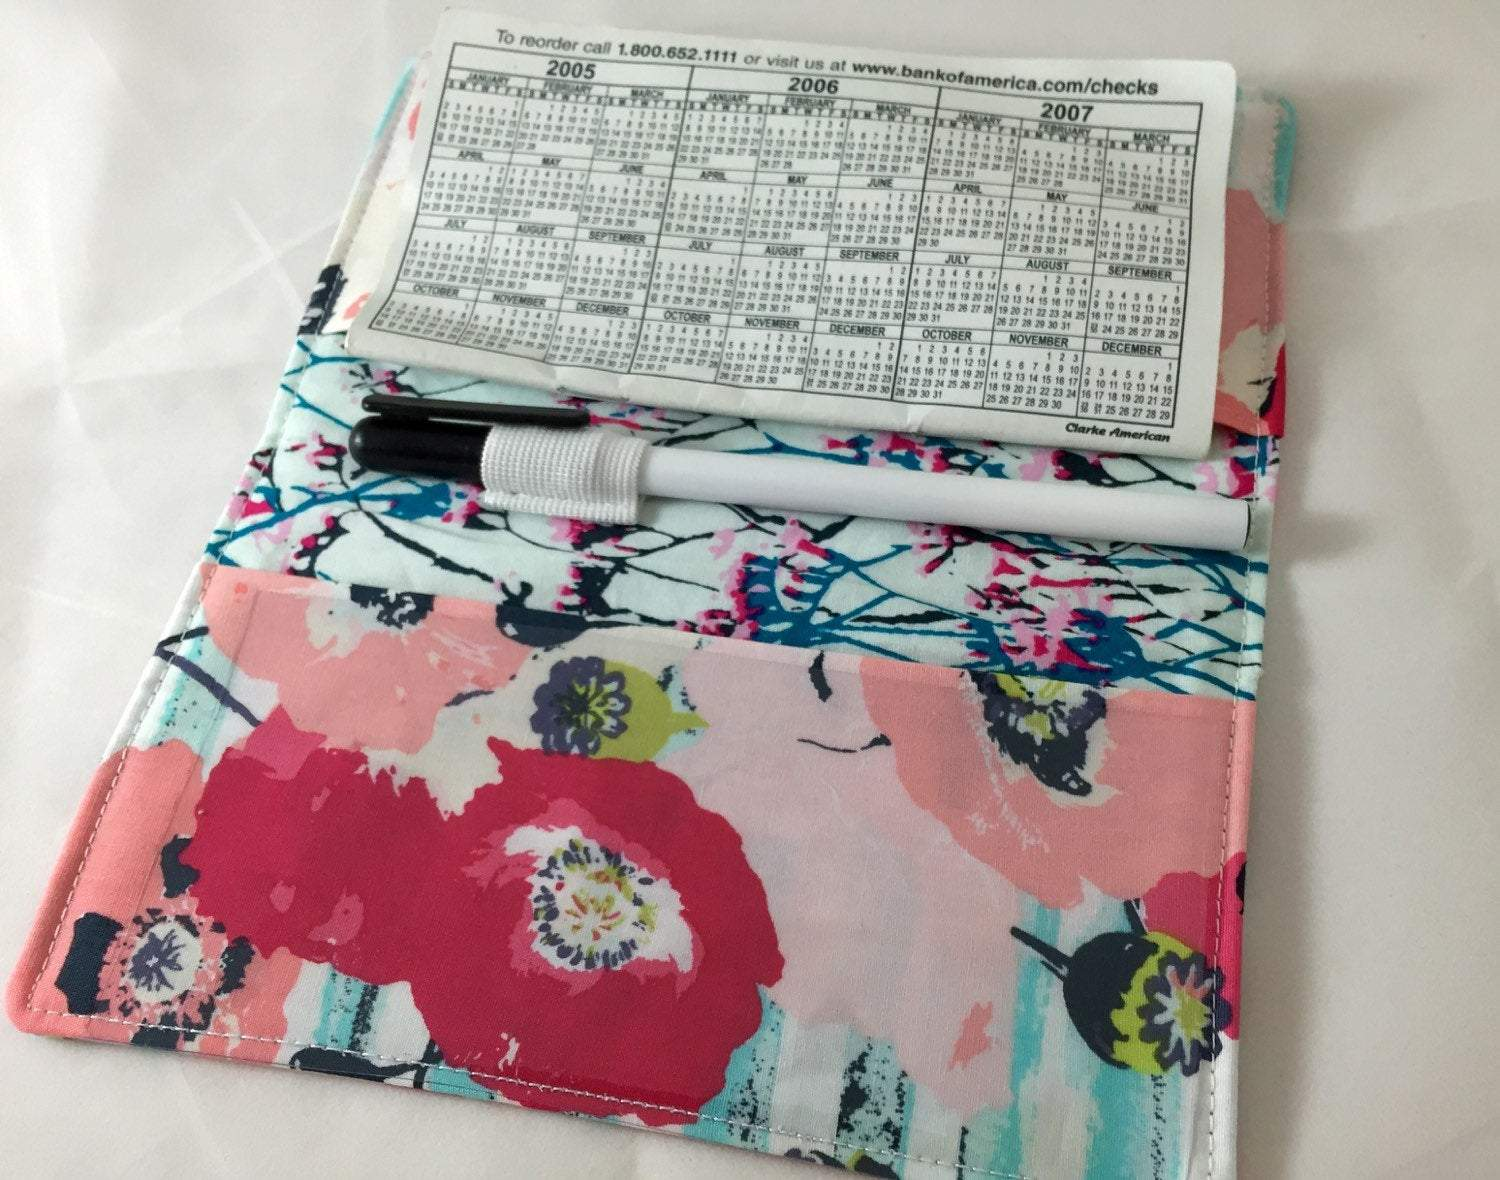 Blue Checkbook Cover, White Duplicate Check Book, Pen Holder, Women's Checkbook - EcoHip Custom Designs